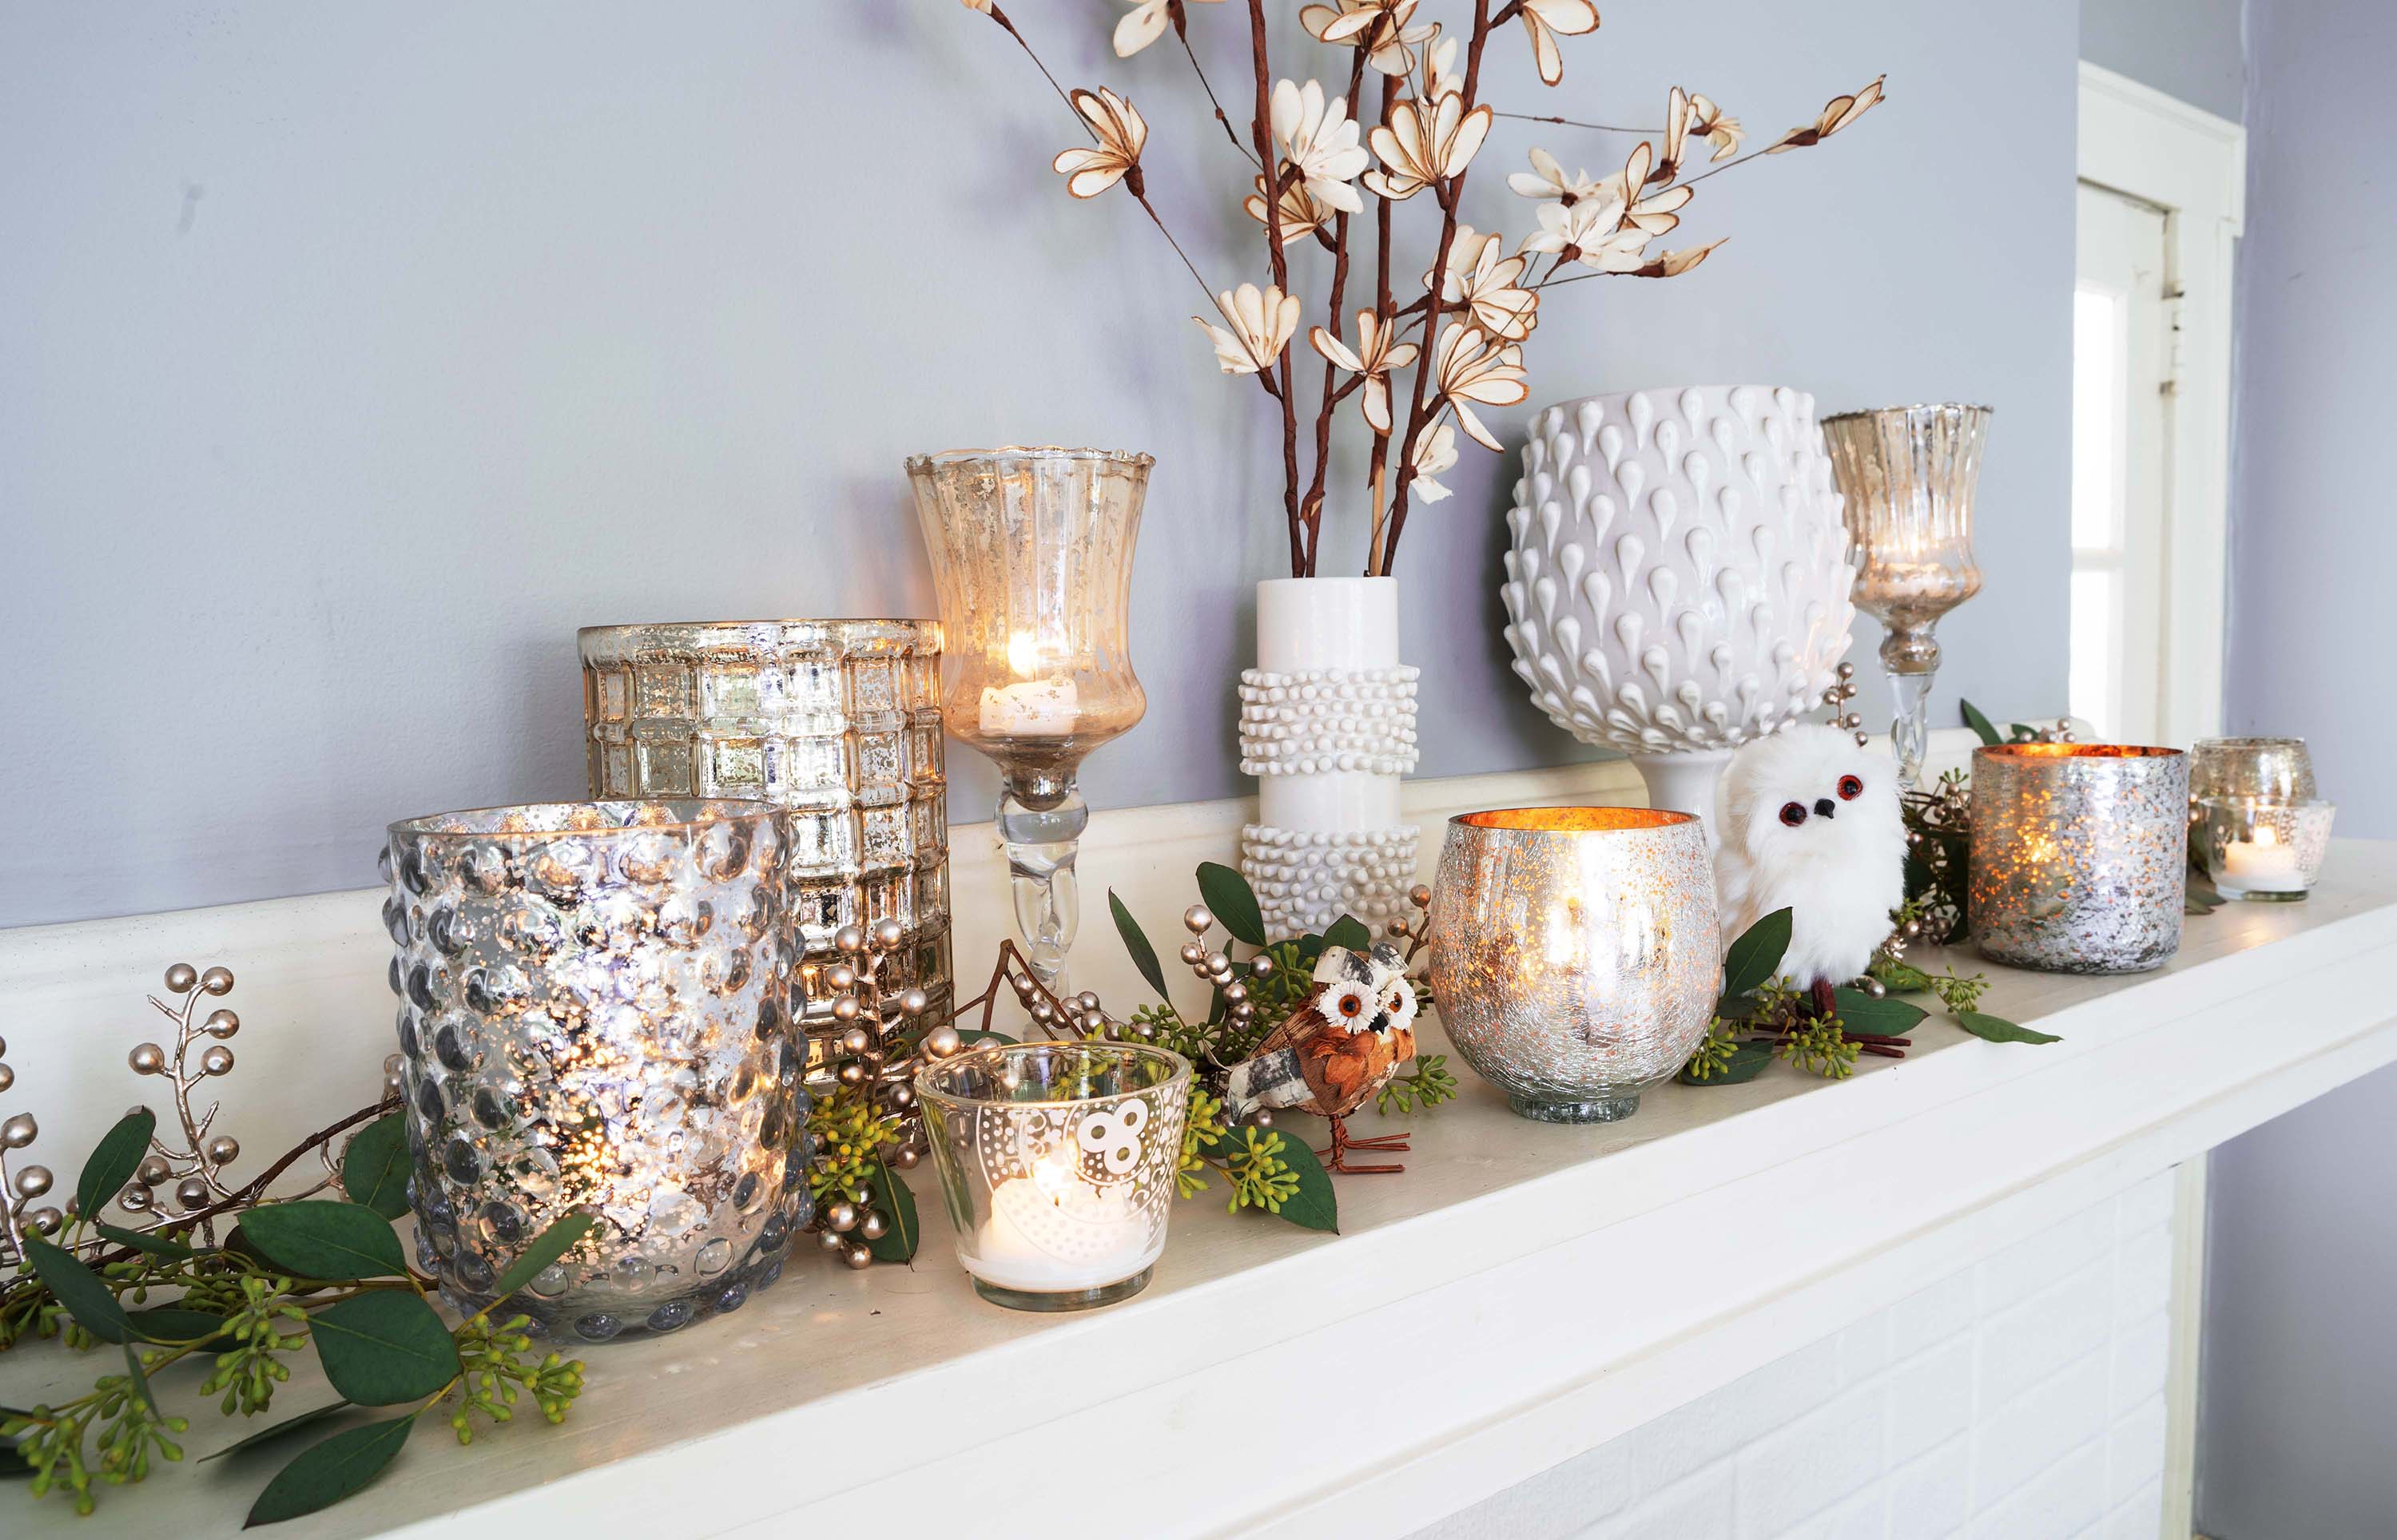 Select candles and glassware to start decorating your mantel.